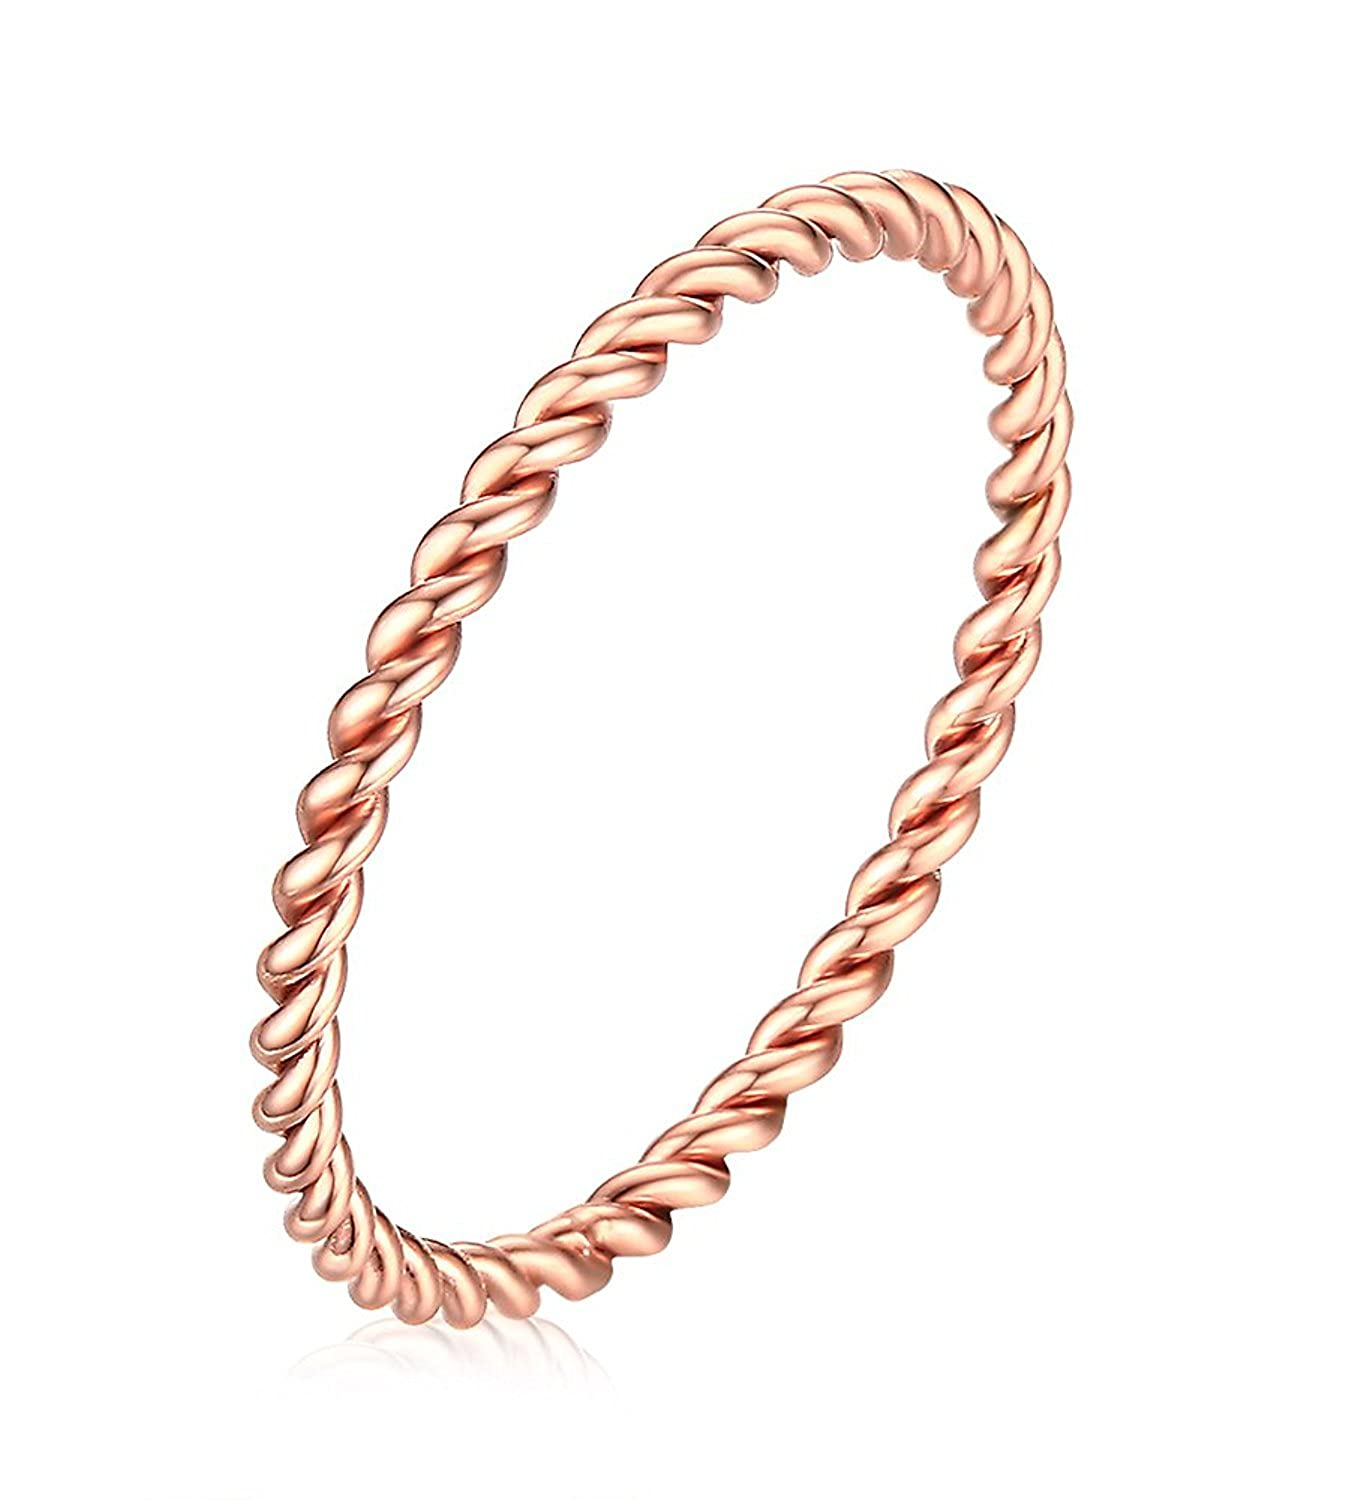 1.5mm Stainless Steel French Rope Wedding Ring for Women,Rose Gold Plated Size 5-7 JAJAFOOK VX0818014